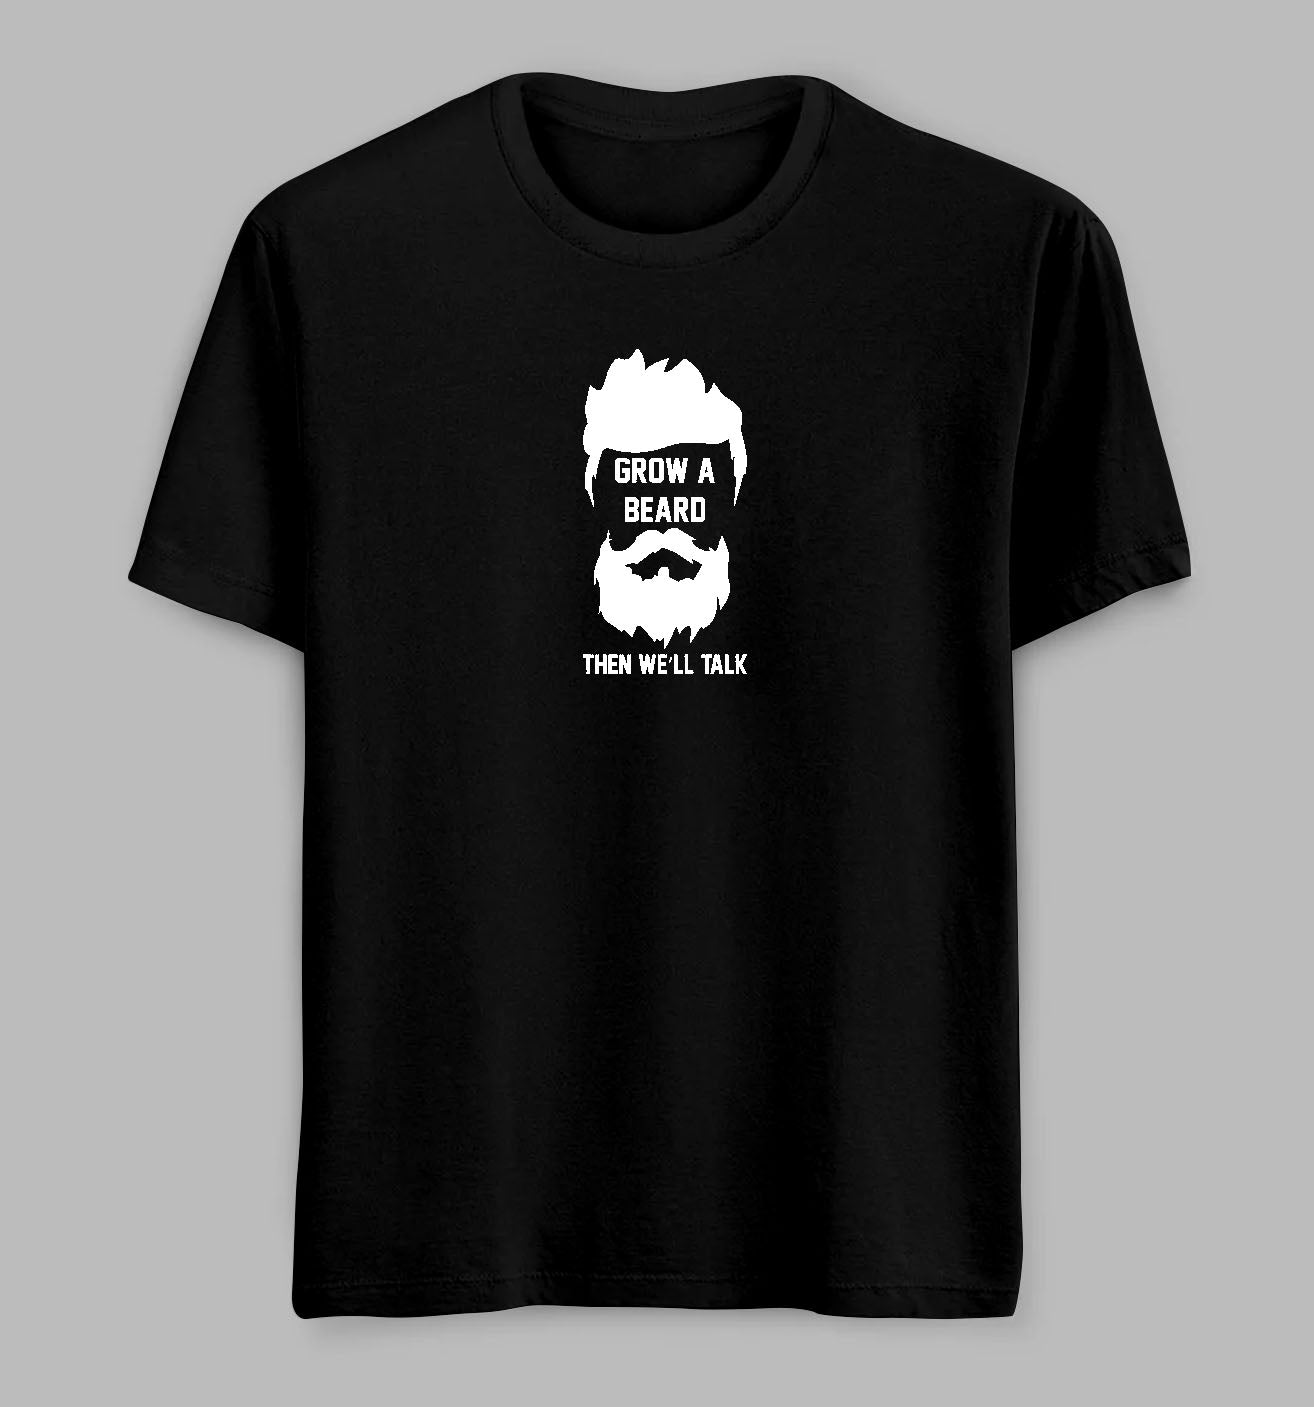 Grow A Beard Tees/ Tshirts